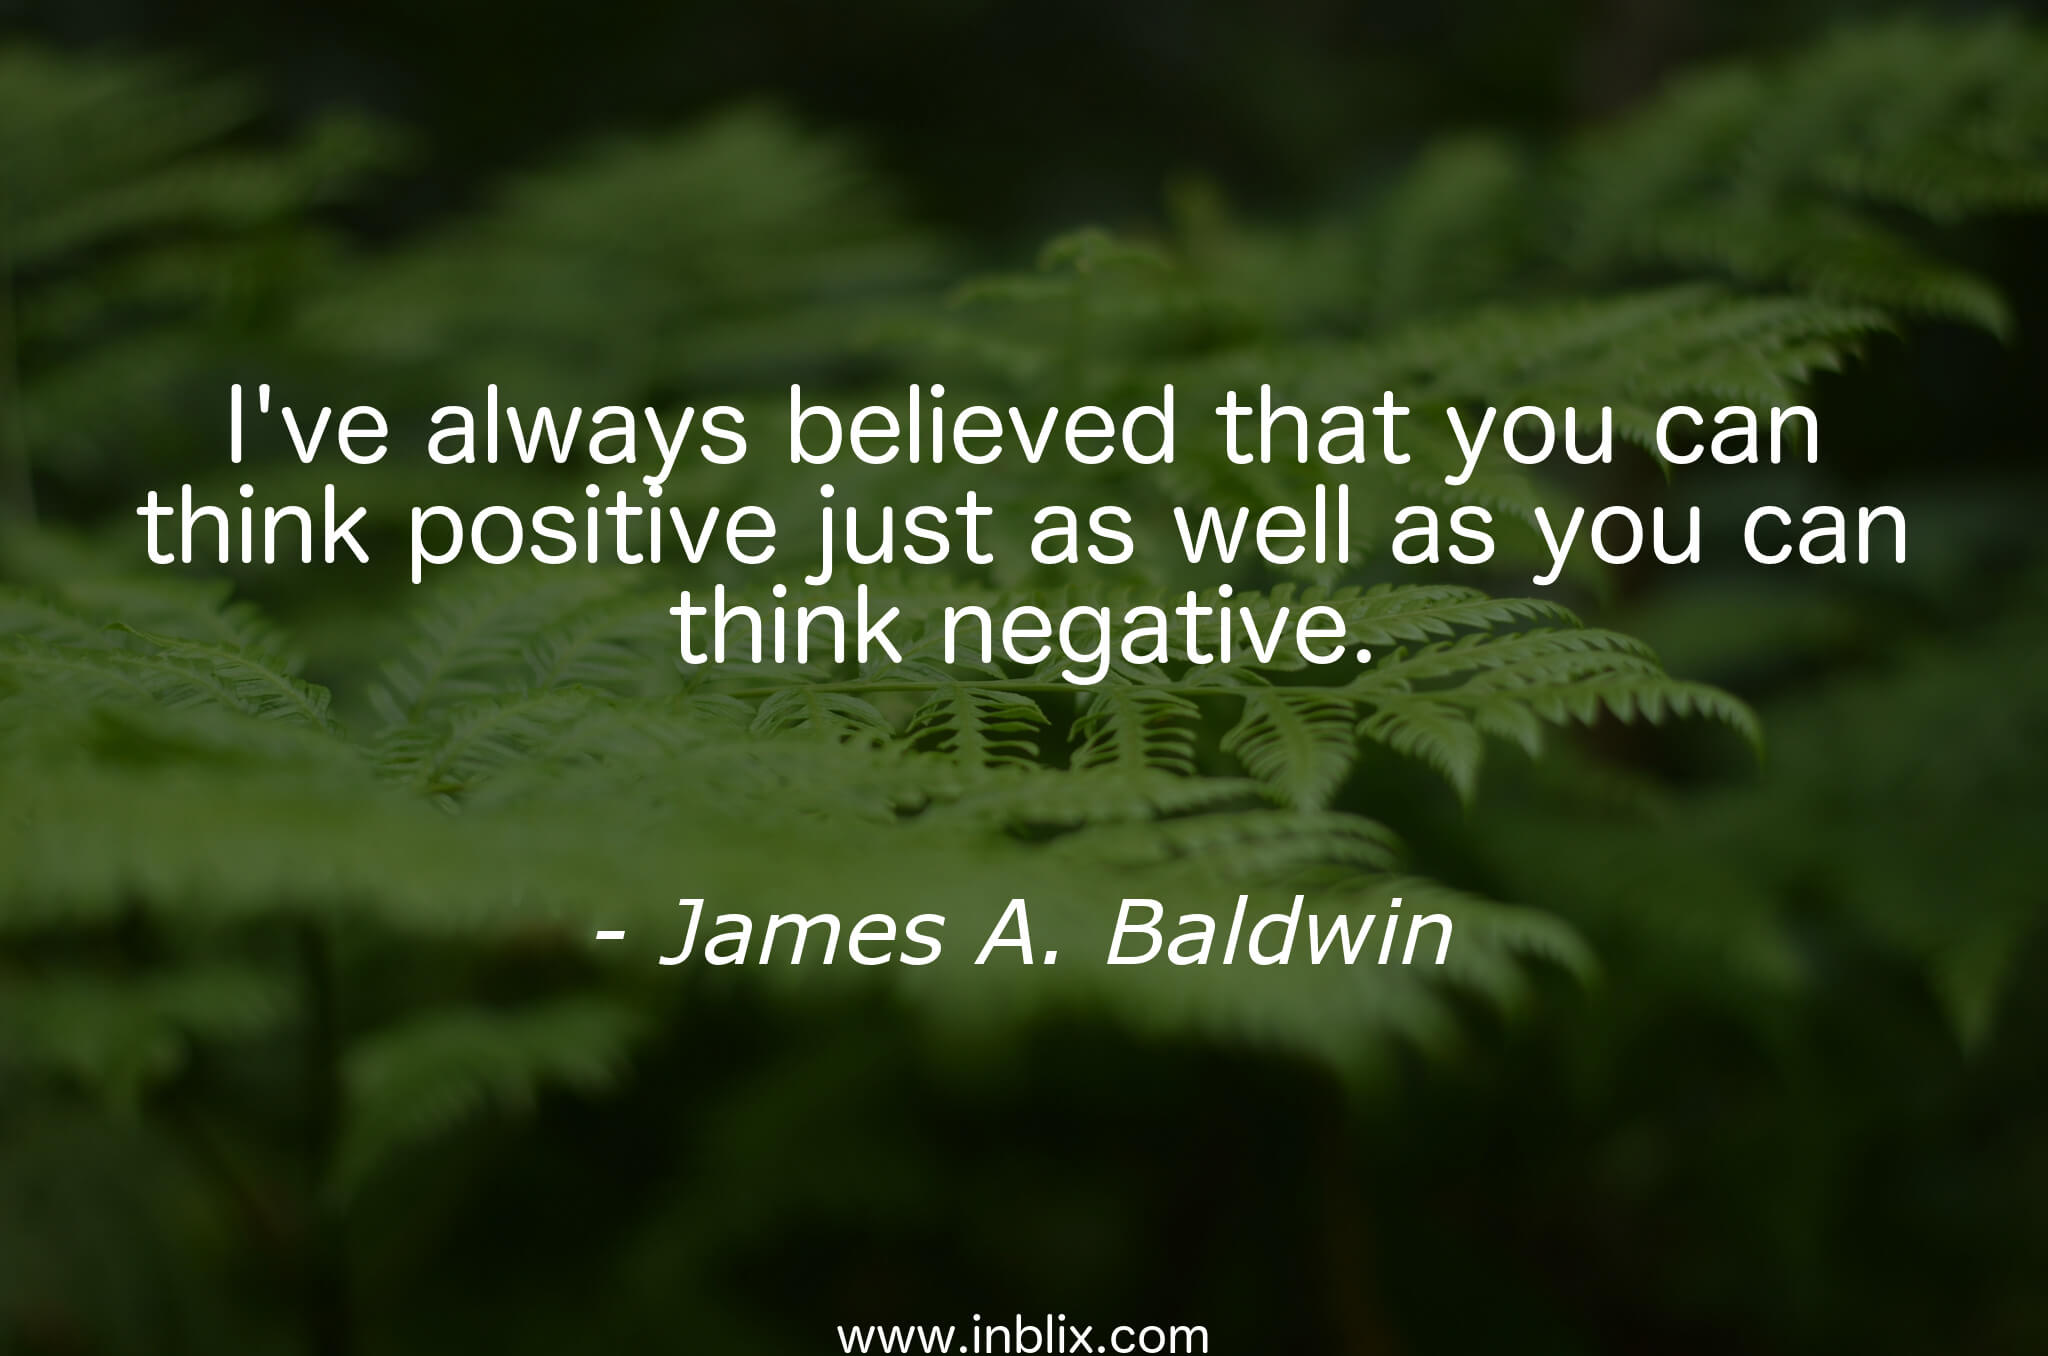 I've always believed that you can think positive just as well as you can think negative.